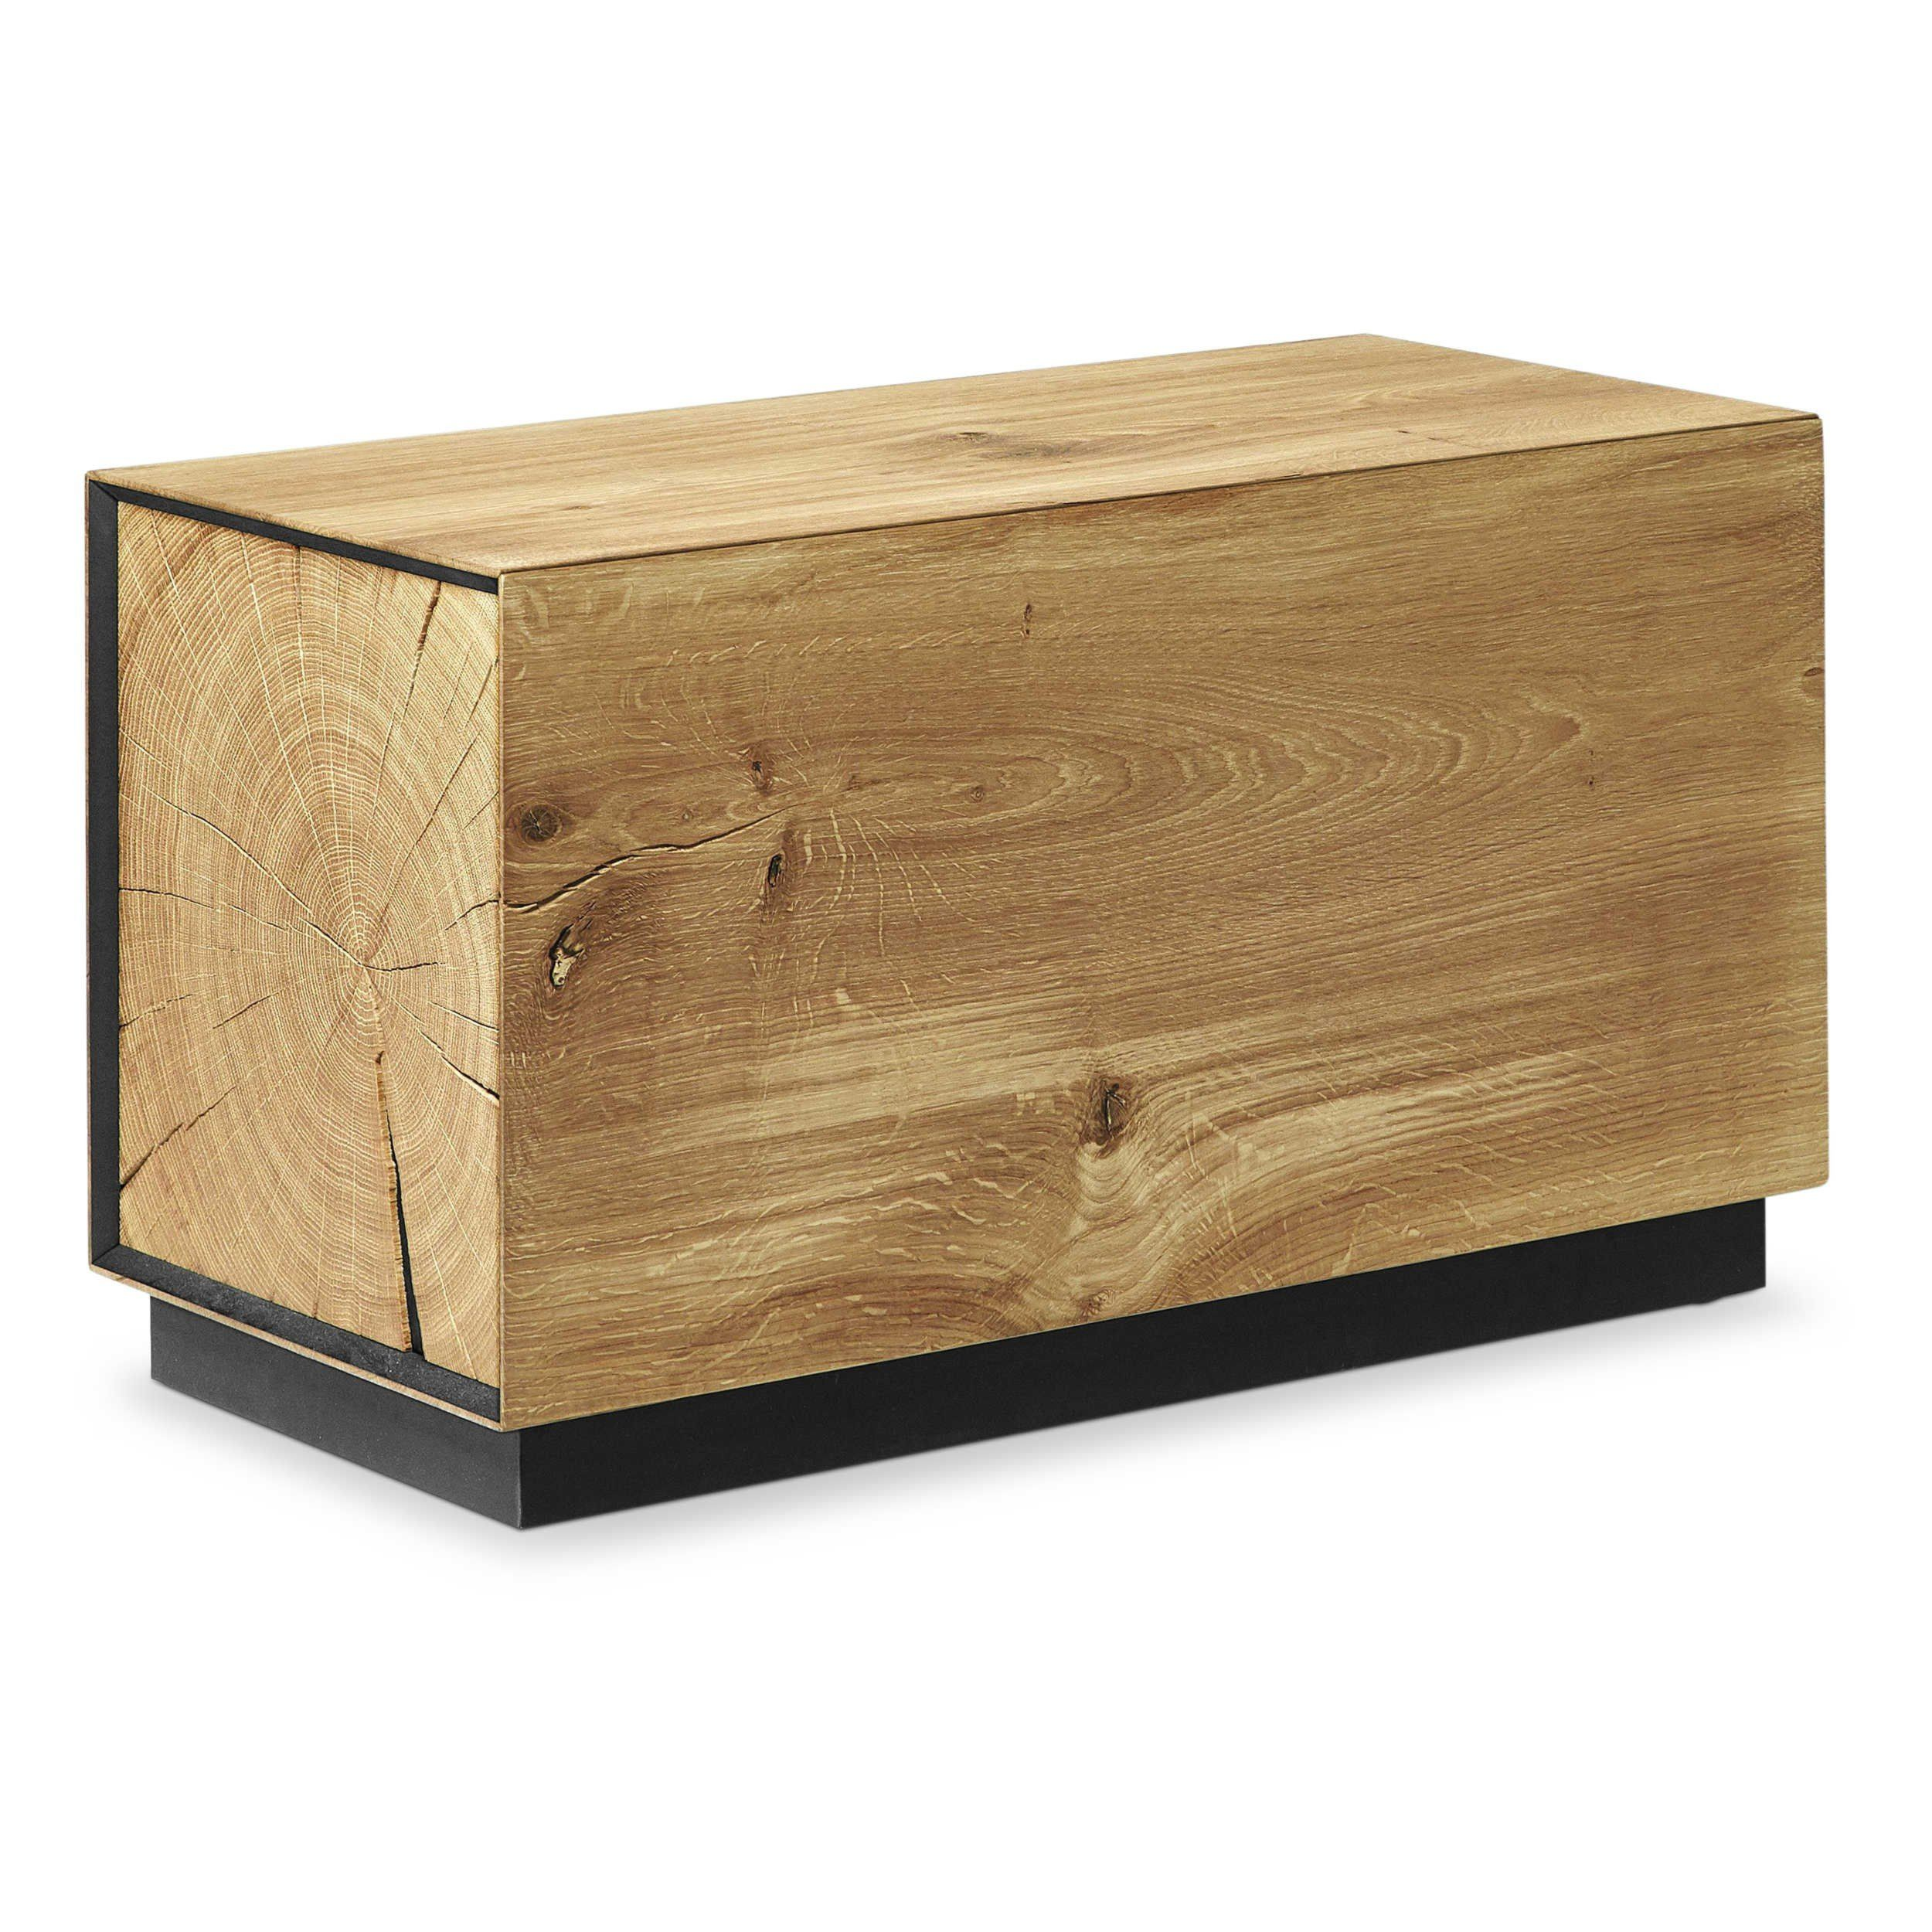 Kissenbox Holz Garderobenbank Dryad Ideen Furniture Outdoor Storage Und